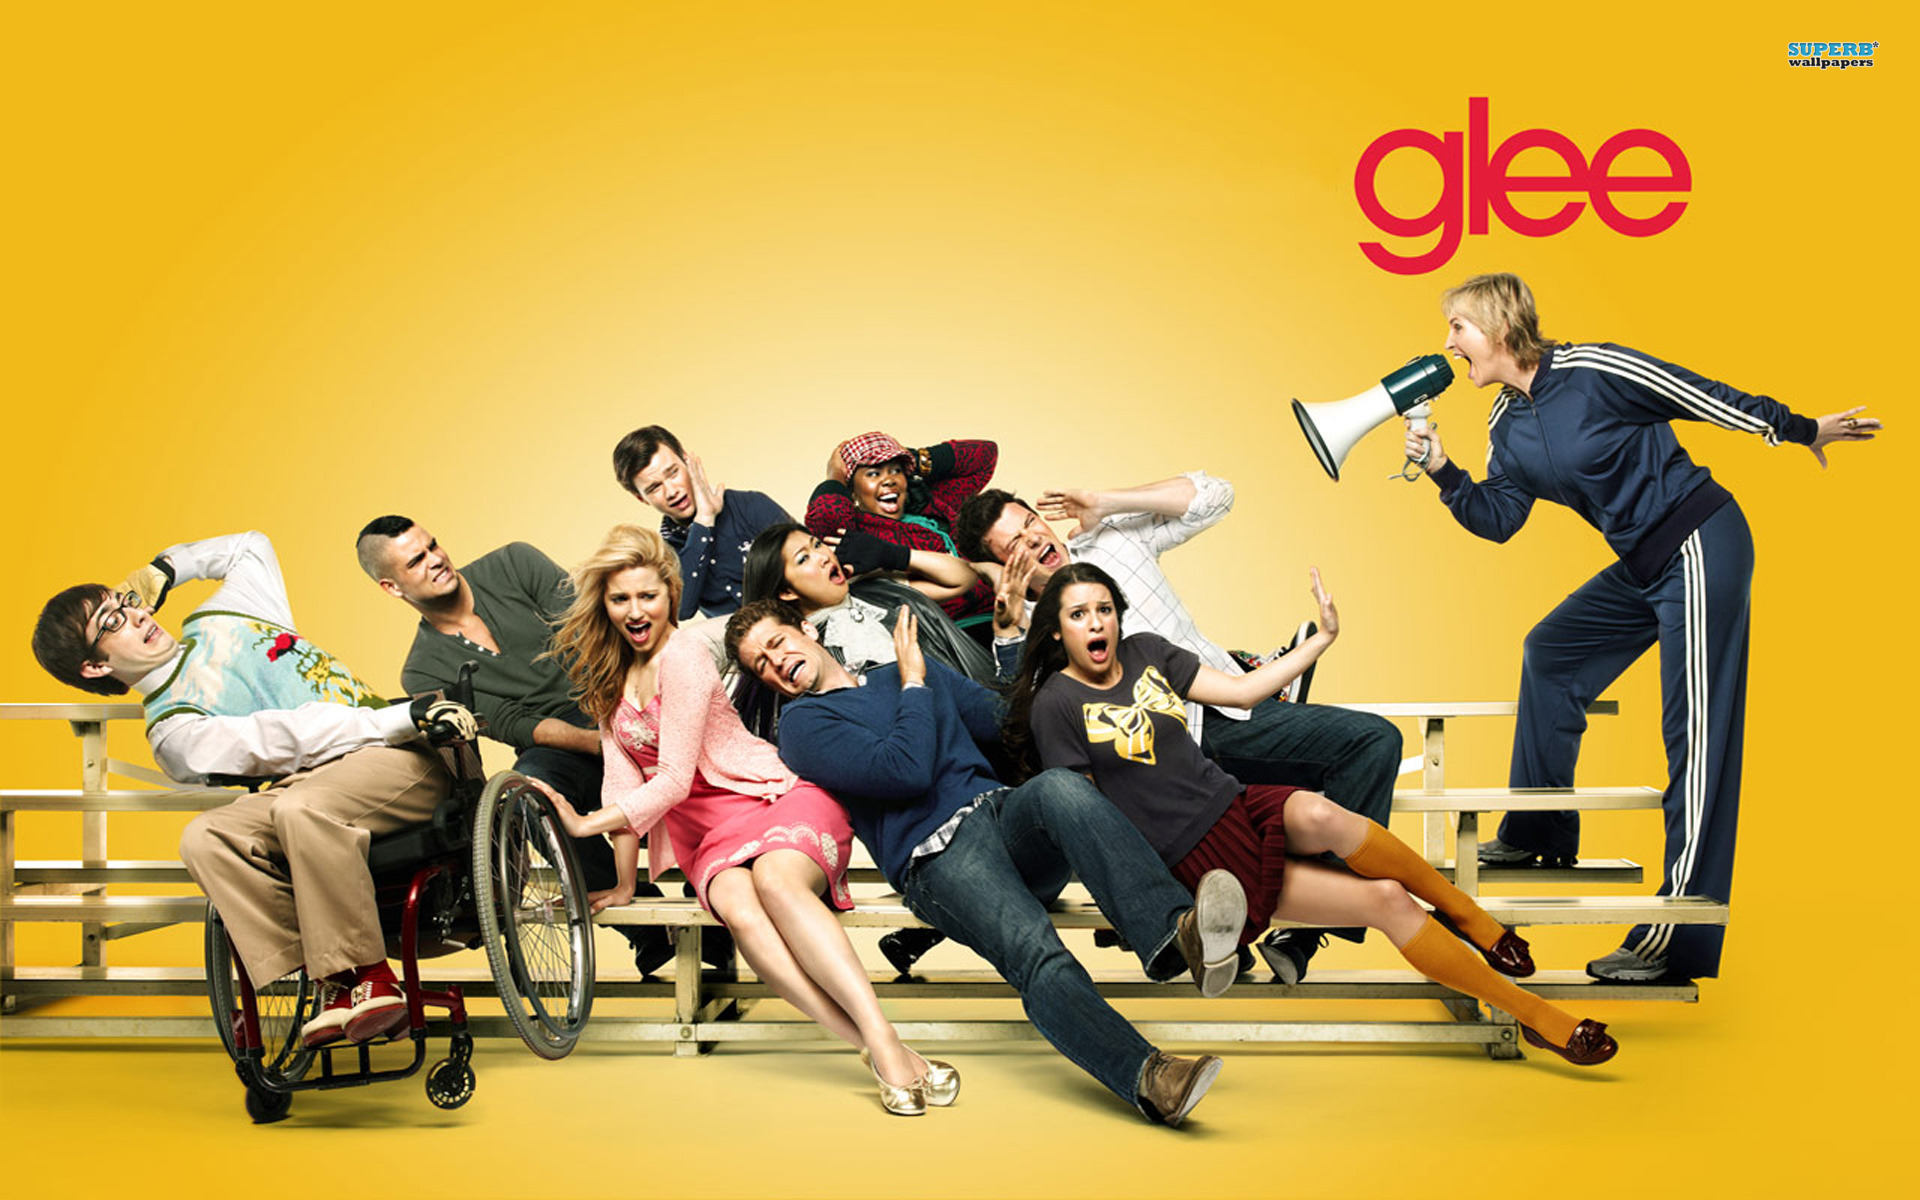 Capa do Glee 12869 1920x1200bb seriados